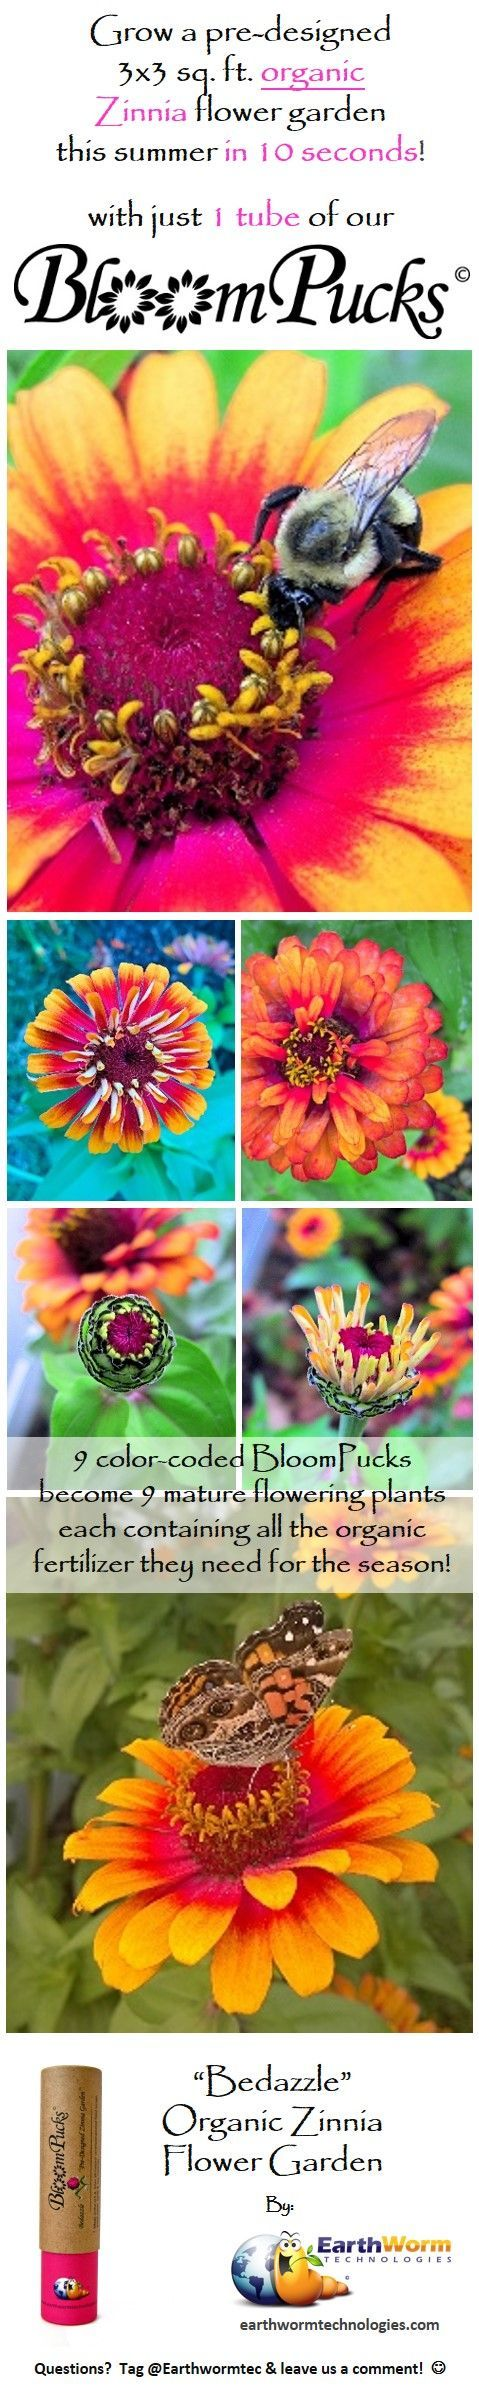 "This year for Mother's Day - give her an eco-friendly gift that keeps on giving. Easily grow a gorgeous 9 square foot organic Zinnia Flower Garden with just 1 tube of our ""Bedazzle"" BloomPucks (containing 9 BloomPucks that each grow into a fully mature plant blooming all Summer into Fall). They are color-coded (3 each of 3 different types of Zinnias growing at different heights & colors). Follow our included layout & take seconds to push each BloomPuck into the soil, water & enjoy the show."